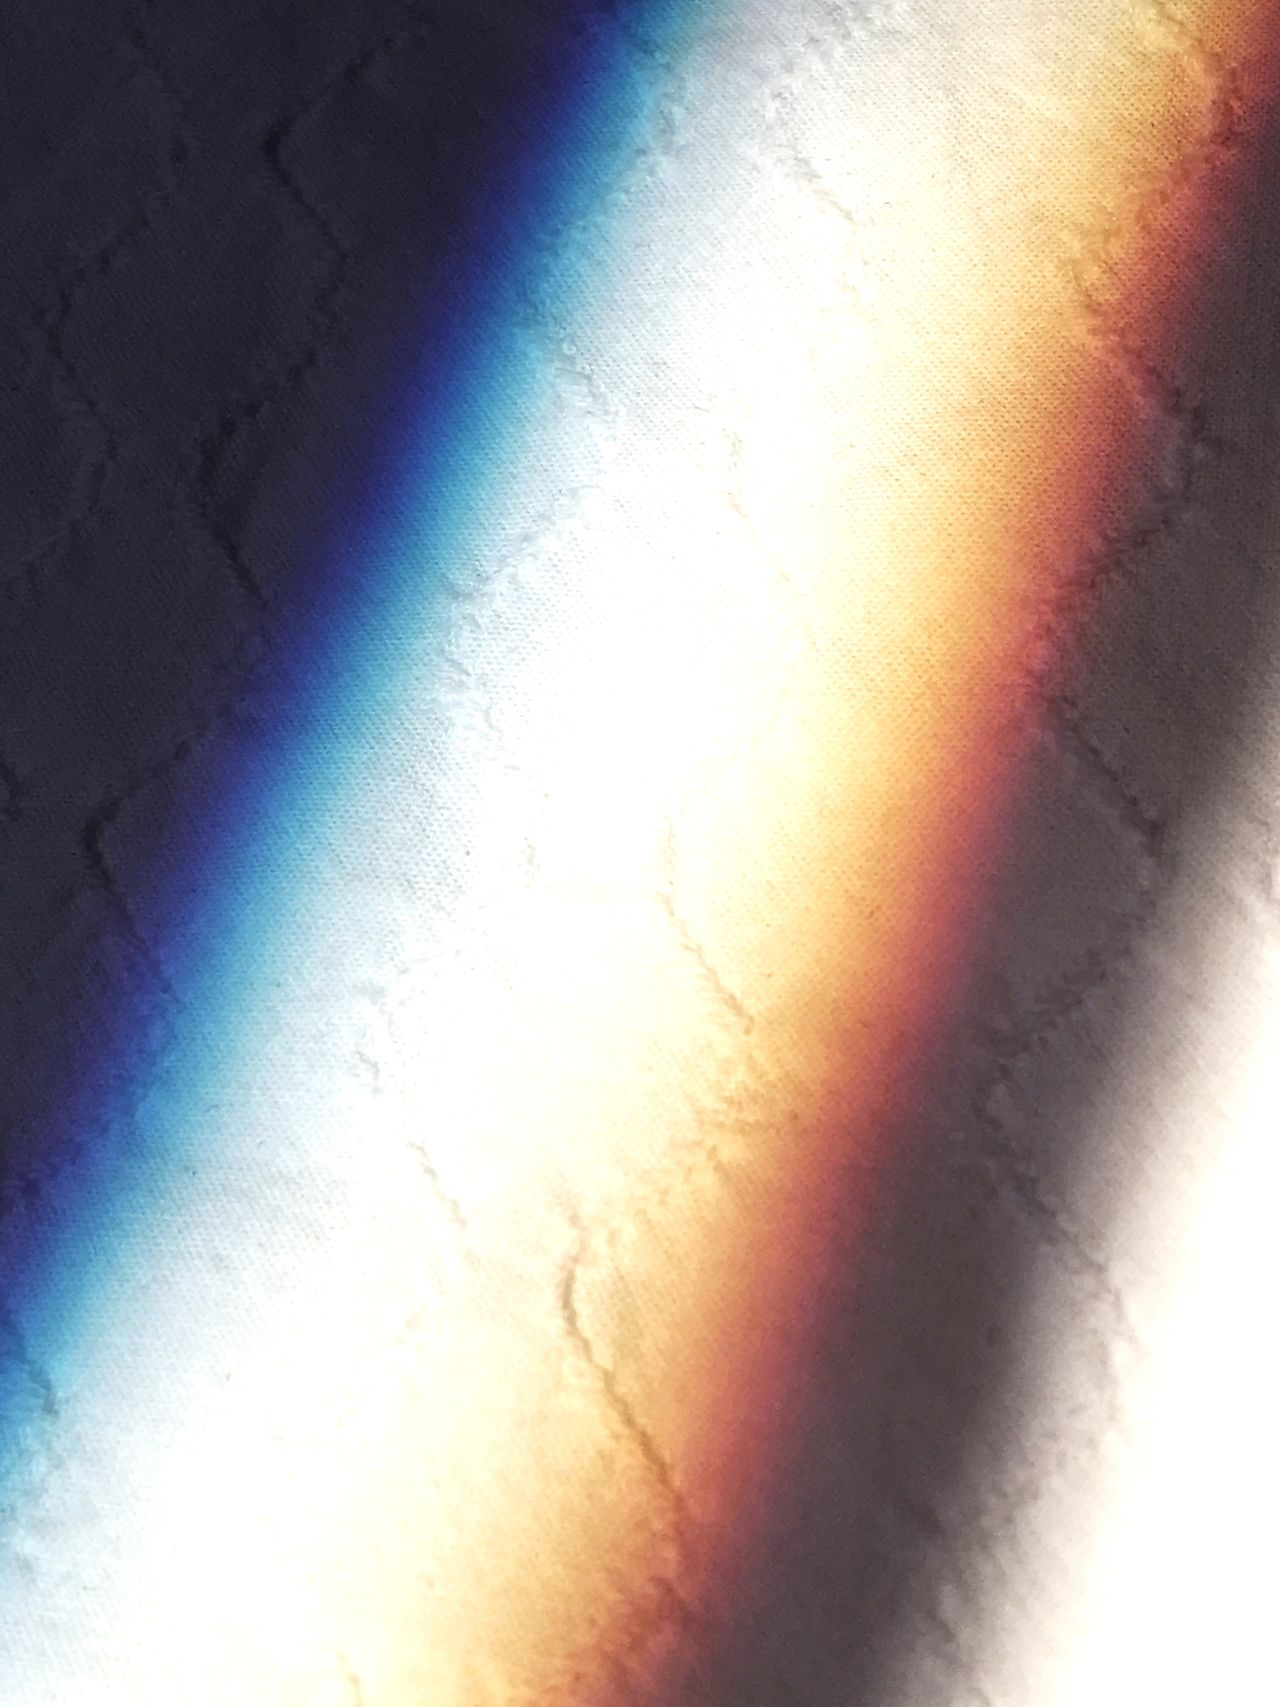 Catching Light Backgrounds Full Frame Close-up Abstract Abstract Photography Textures And Surfaces Bedding Creative Light And Shadow